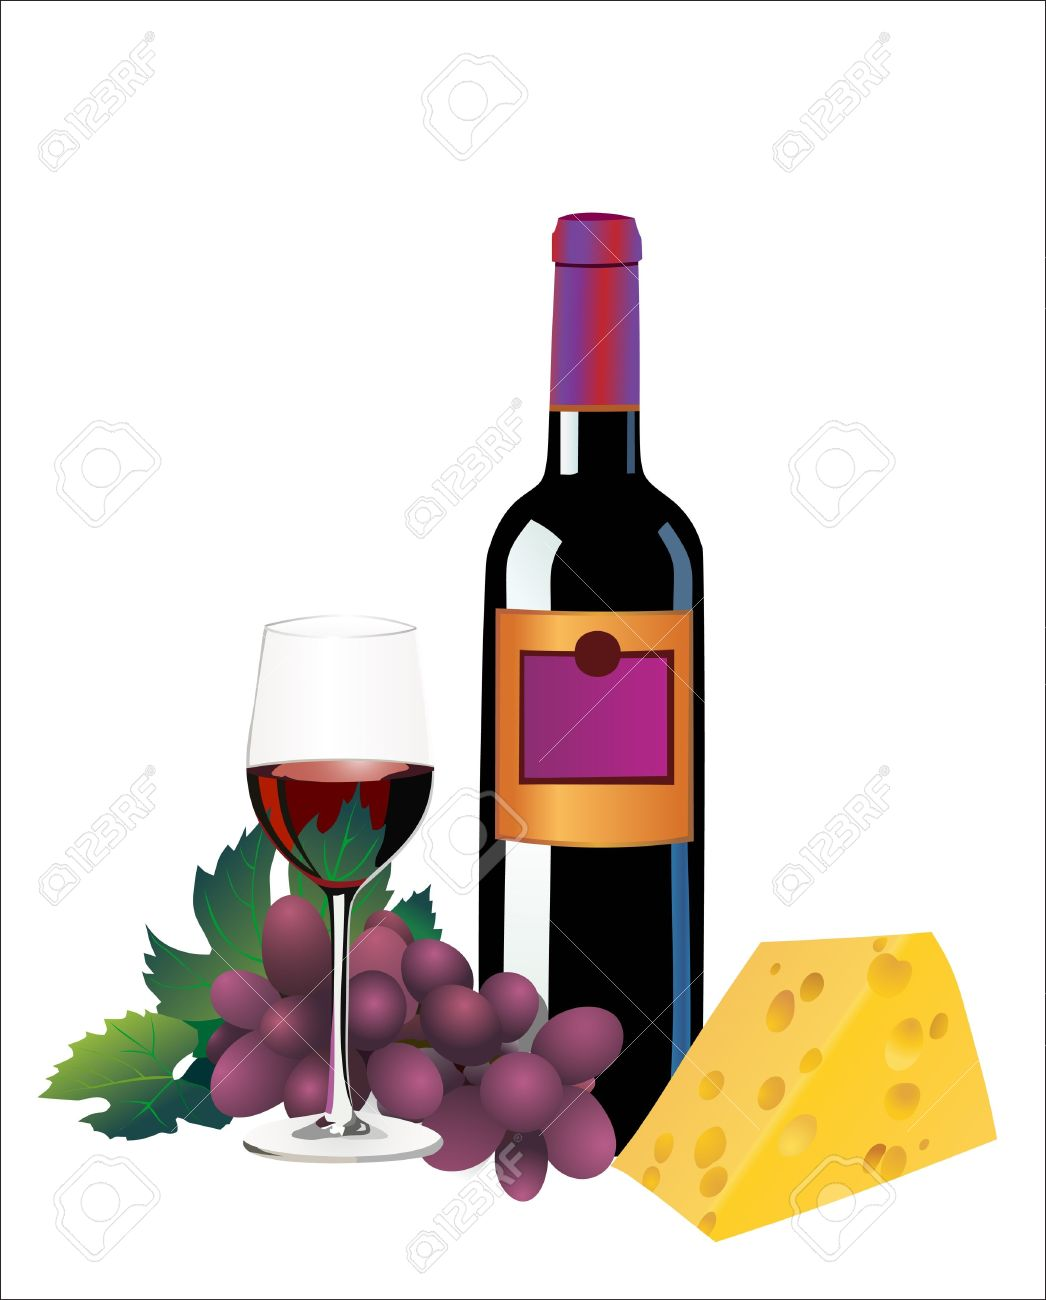 Wine and cheese clip art getbellhop.